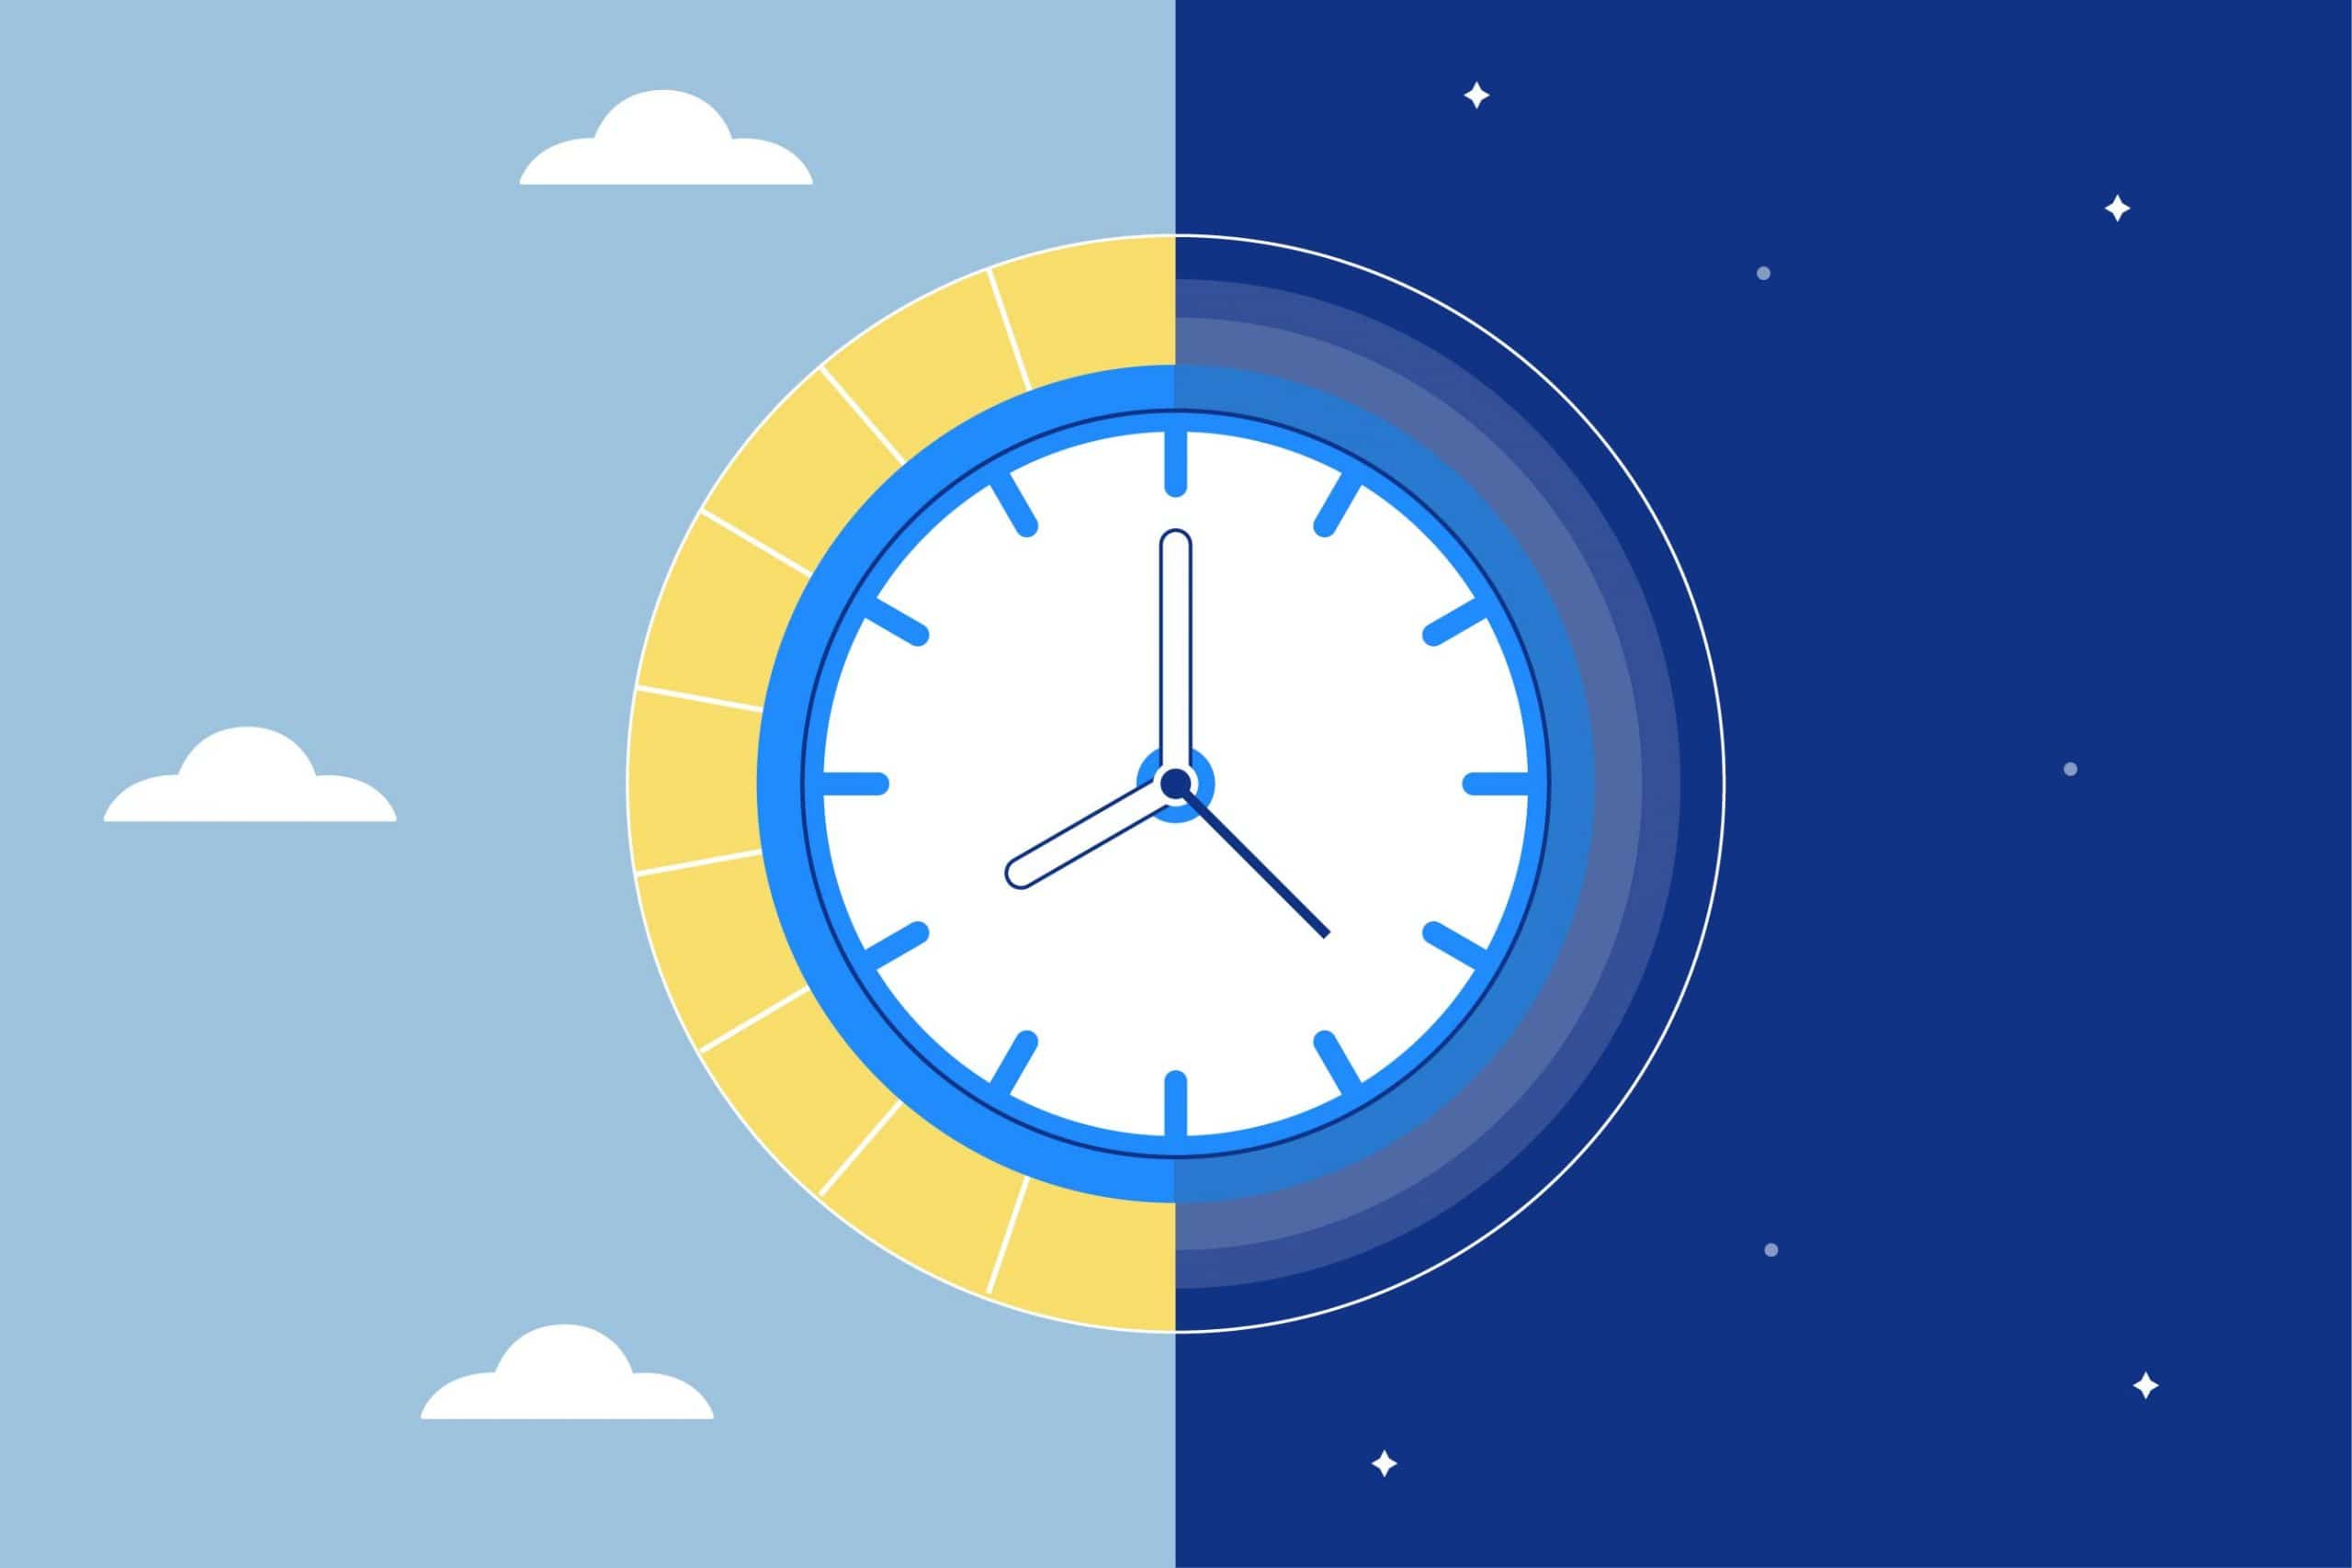 Reset Your Broken Internal Sleep Clock & Fix Sleep Schedule